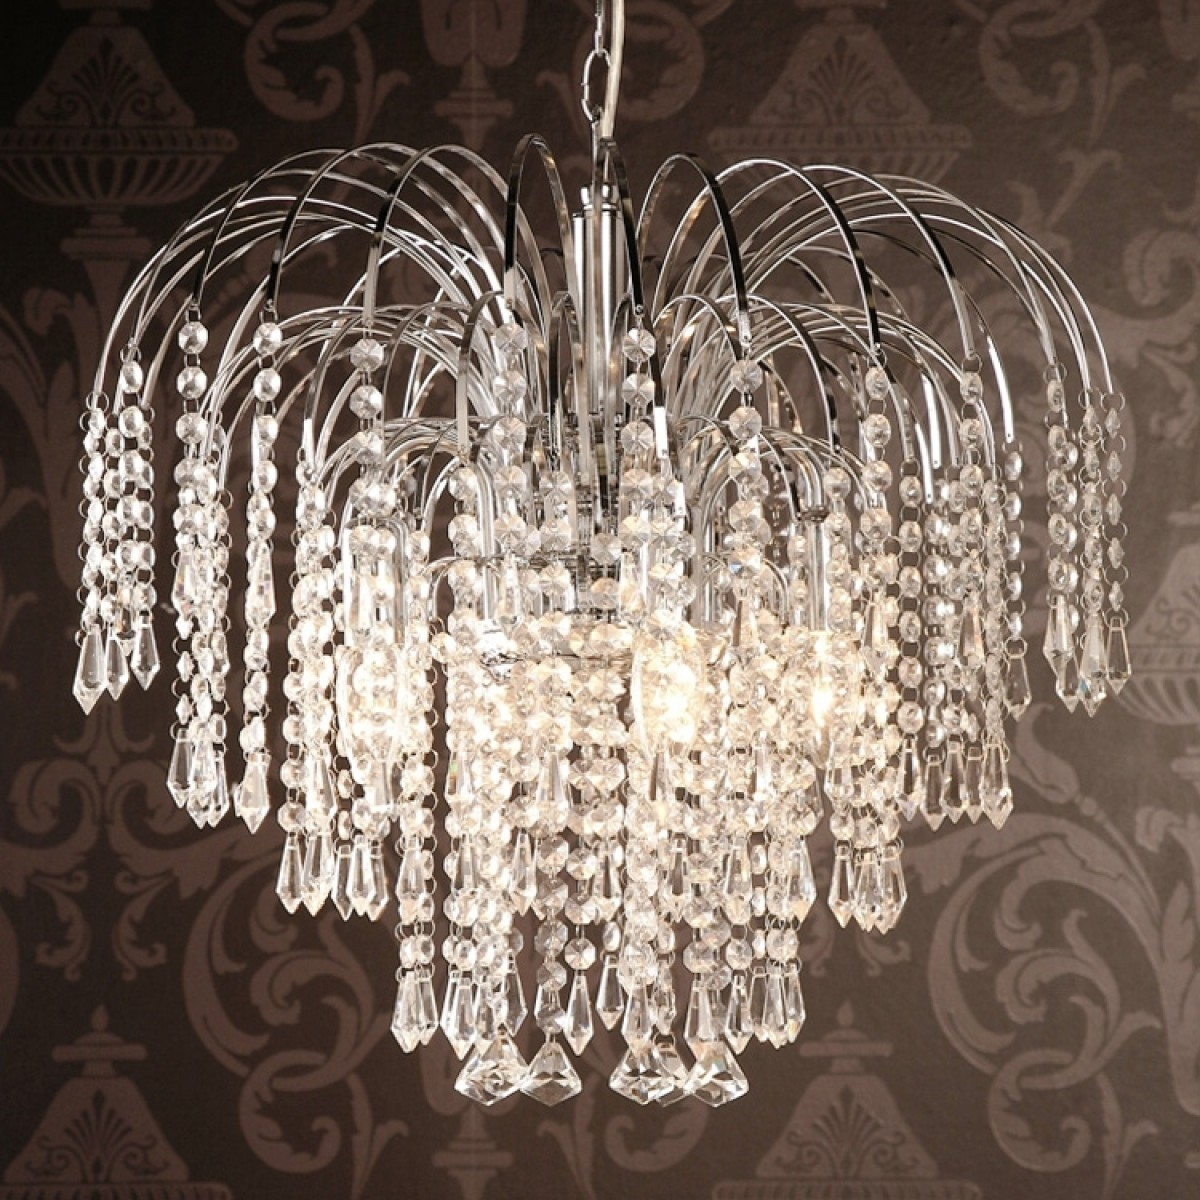 Four Light Chrome Crystal Chandelier Throughout Crystal Waterfall Chandelier (#8 of 12)